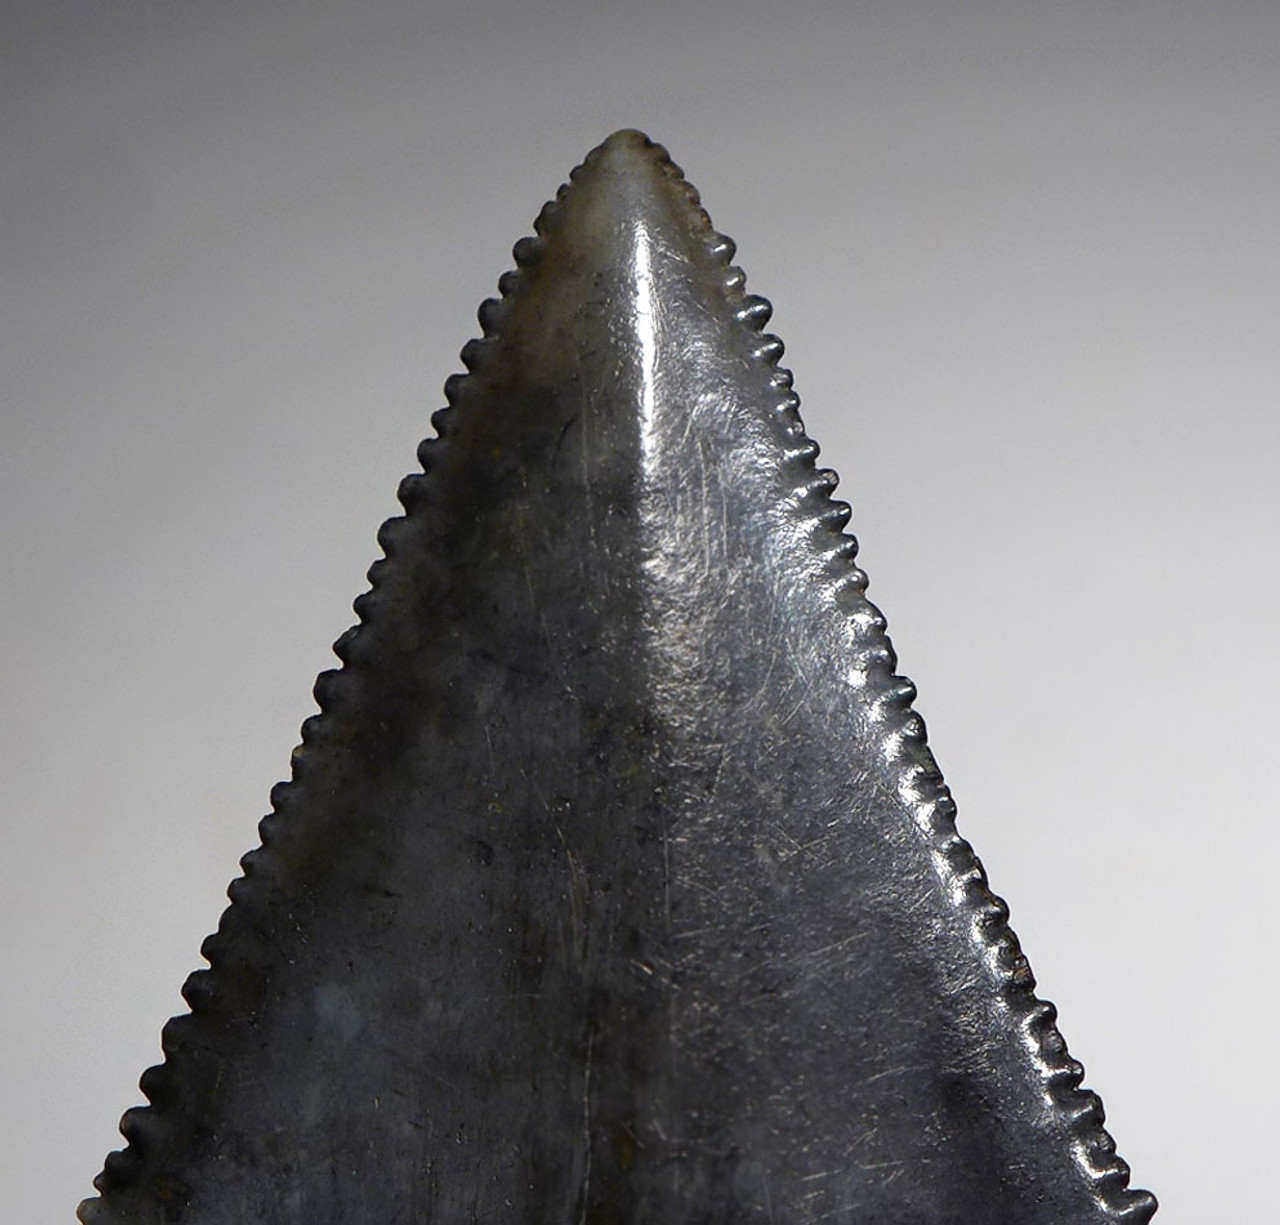 INVESTMENT GRADE 2.3 INCH LARGE FOSSIL GREAT WHITE SHARK TOOTH CARCHARIAS FROM NORTH AMERICA  *SHX075